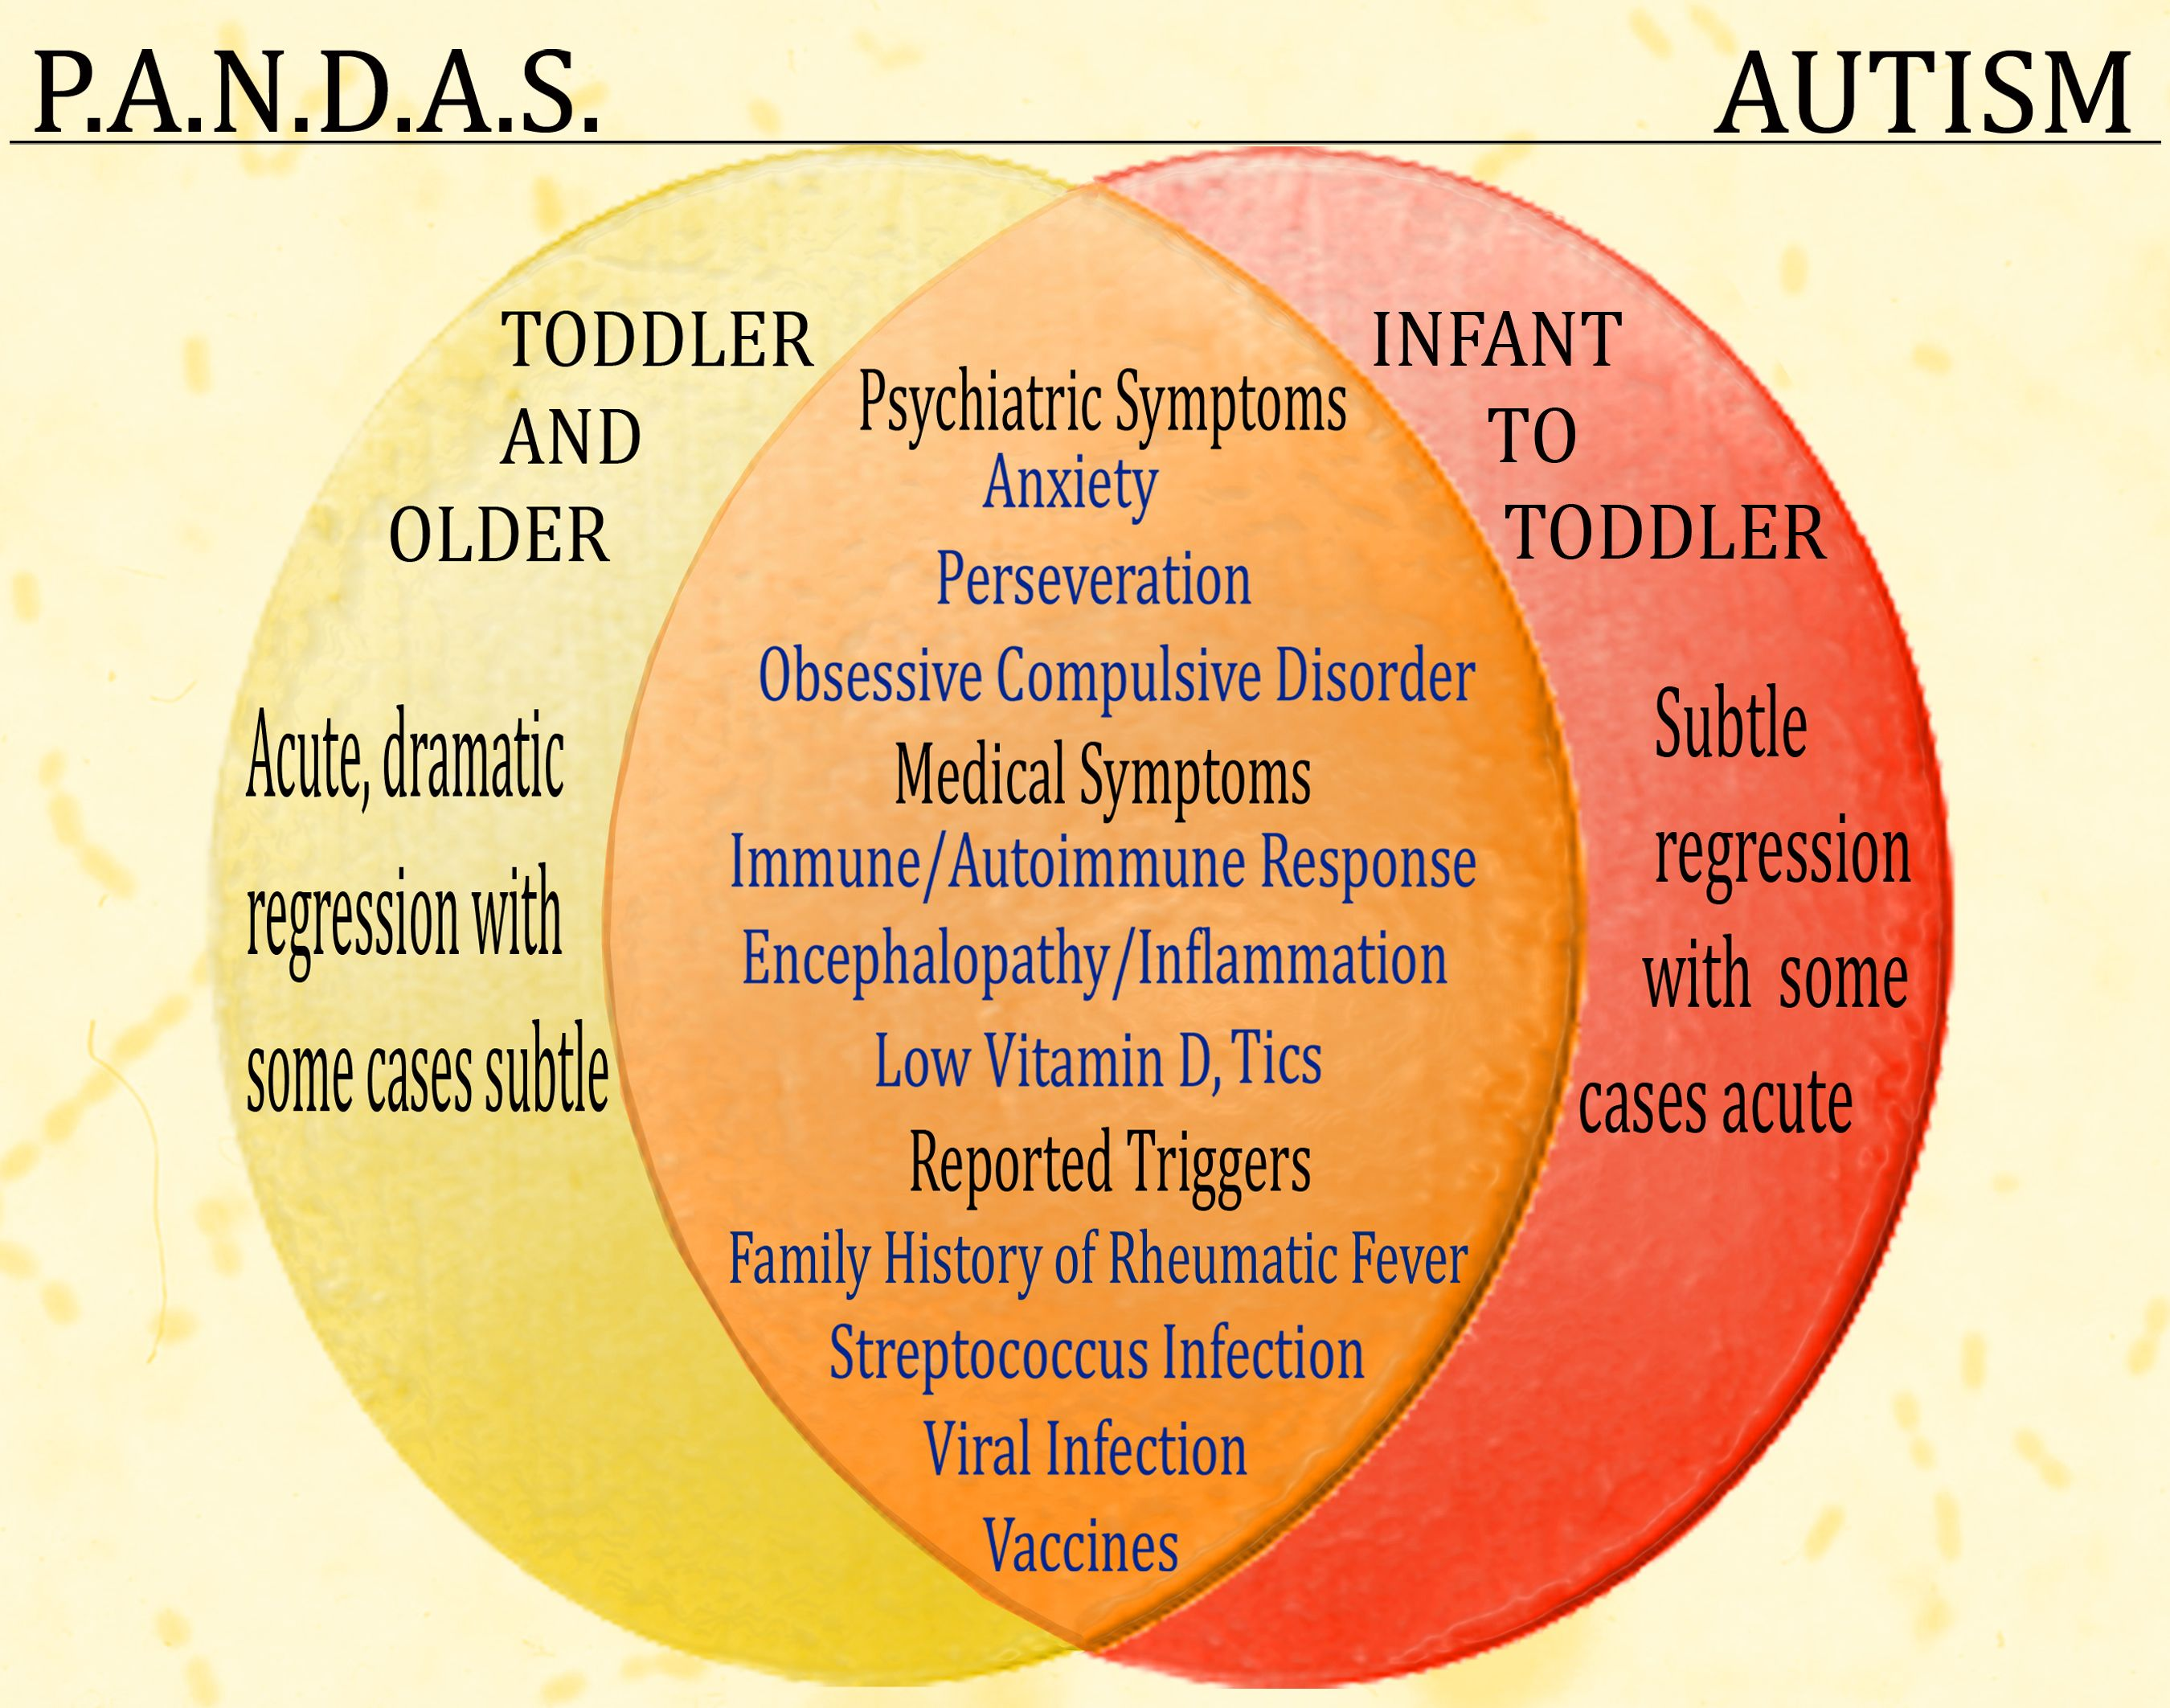 PANDAS is the acronym for Pediatric Autoimmune Neuropsychiatric